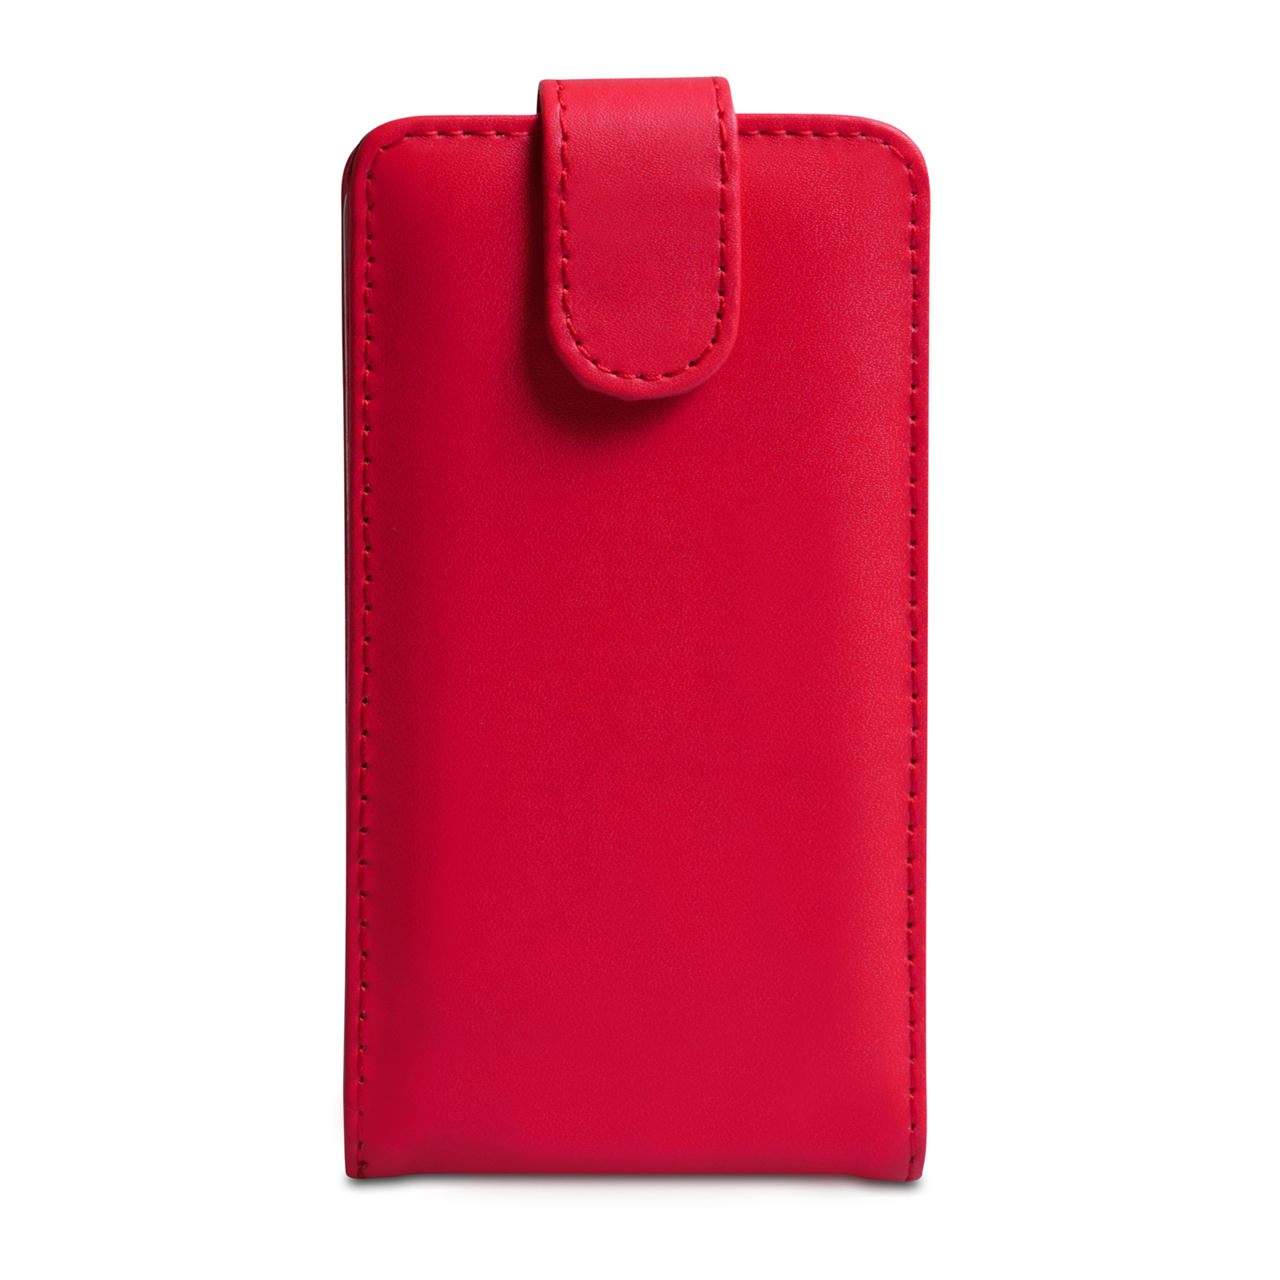 YouSave Accessories Nokia Lumia 625 Leather Effect Flip Case - Red